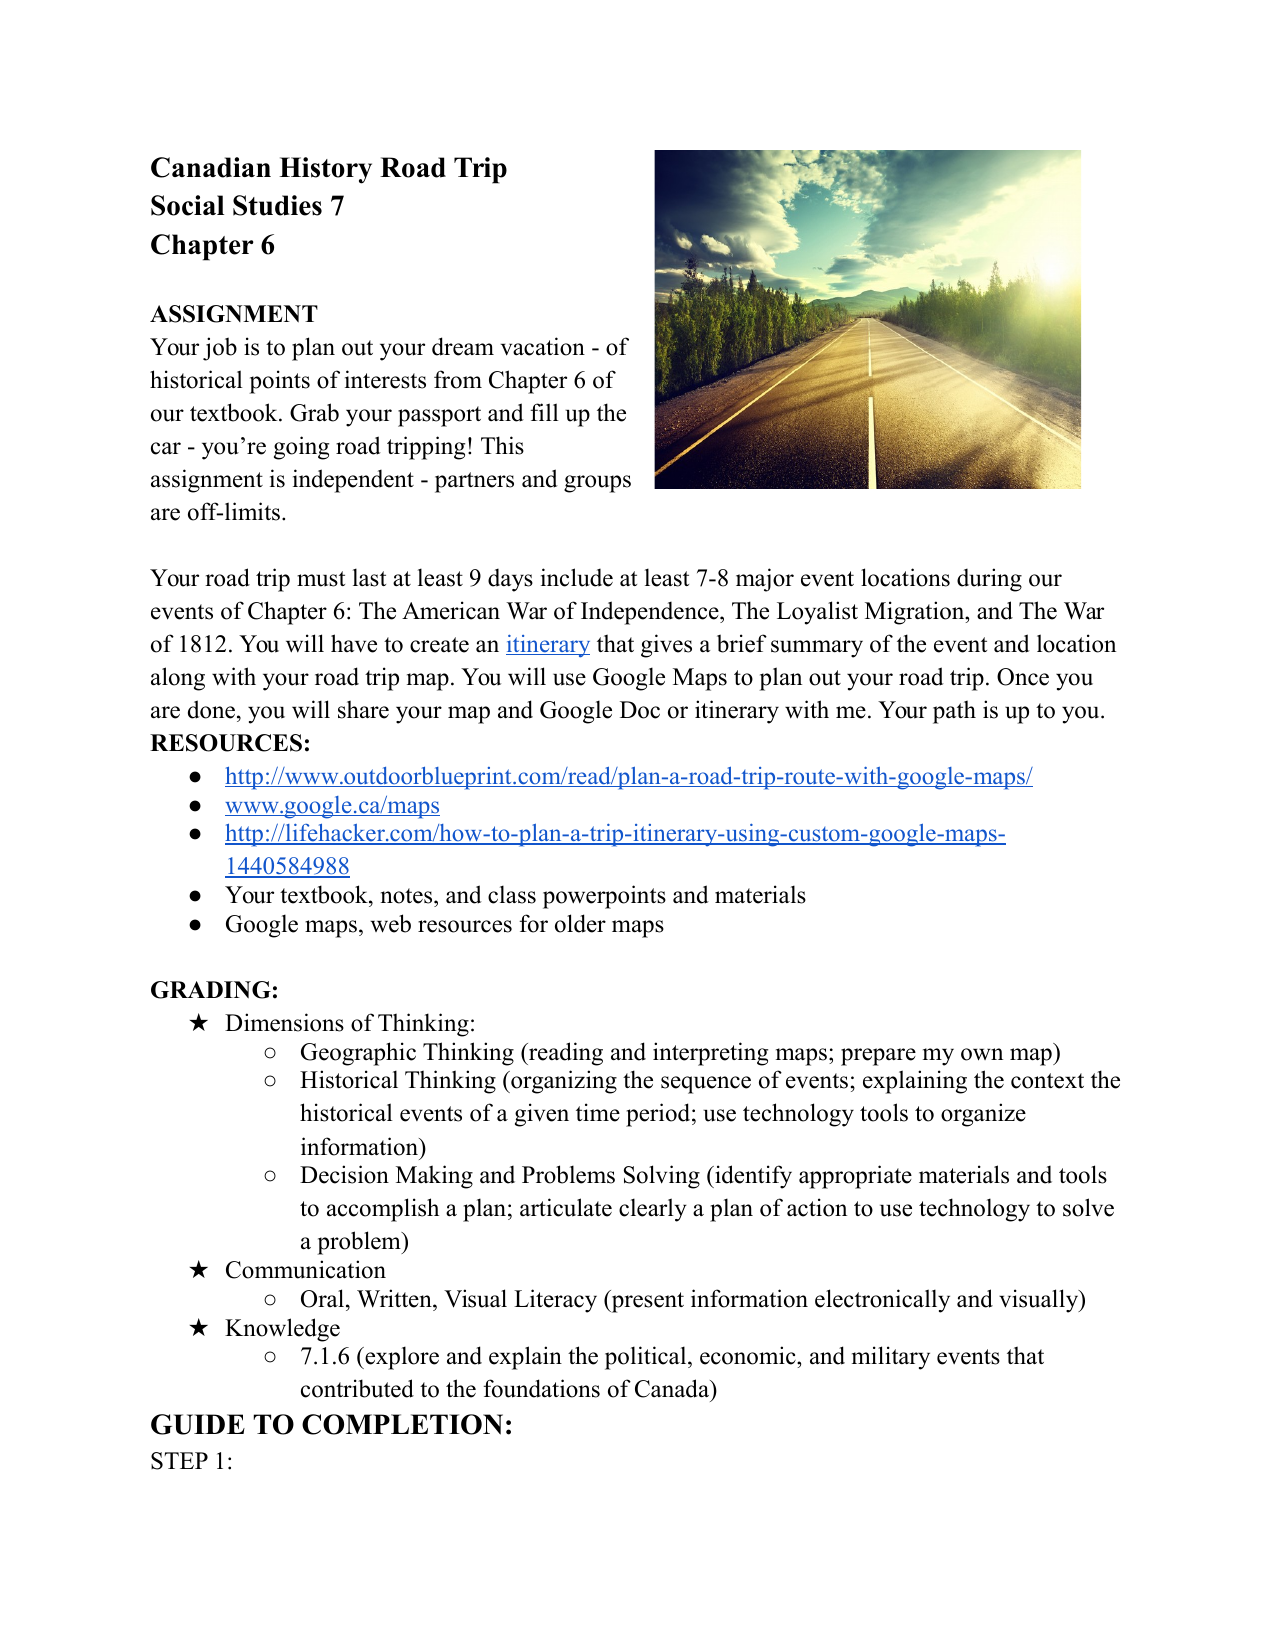 descriptive essay road trip Descriptive essay about my bedroom, road trip creative writing, help creative writing i once started an llm criminology essay with yeats' the second coming in.